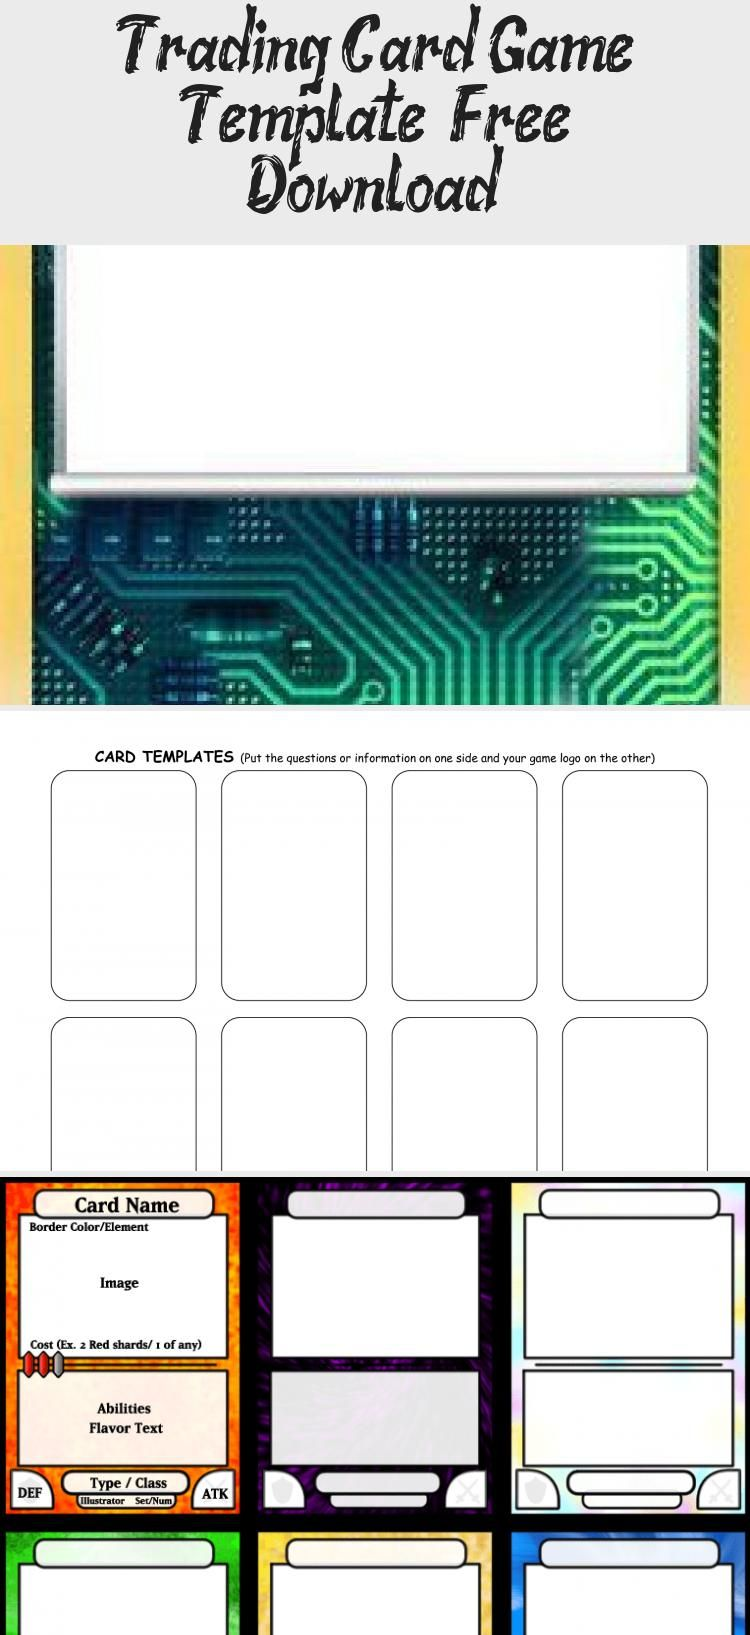 Trading Card Game Template Free Download Birthdaycardsonline Card Games Trading Cards Game Online Card Games